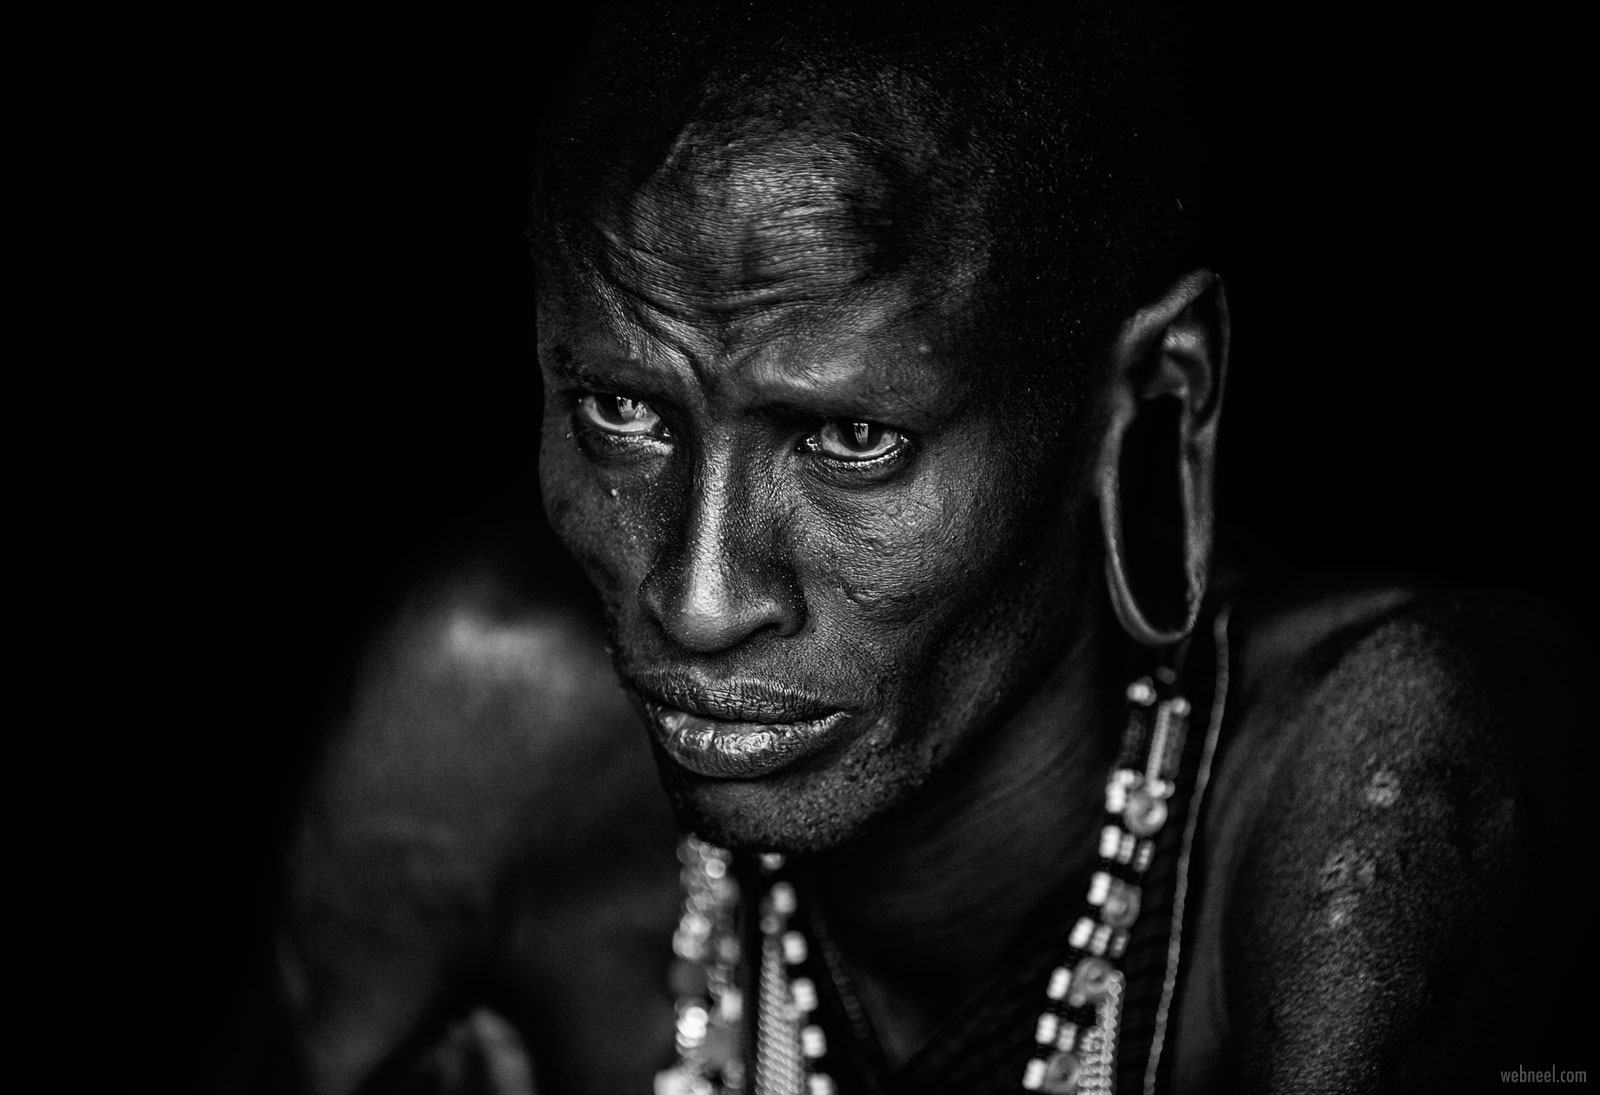 portrait photography tribal masai man by vedranvidak